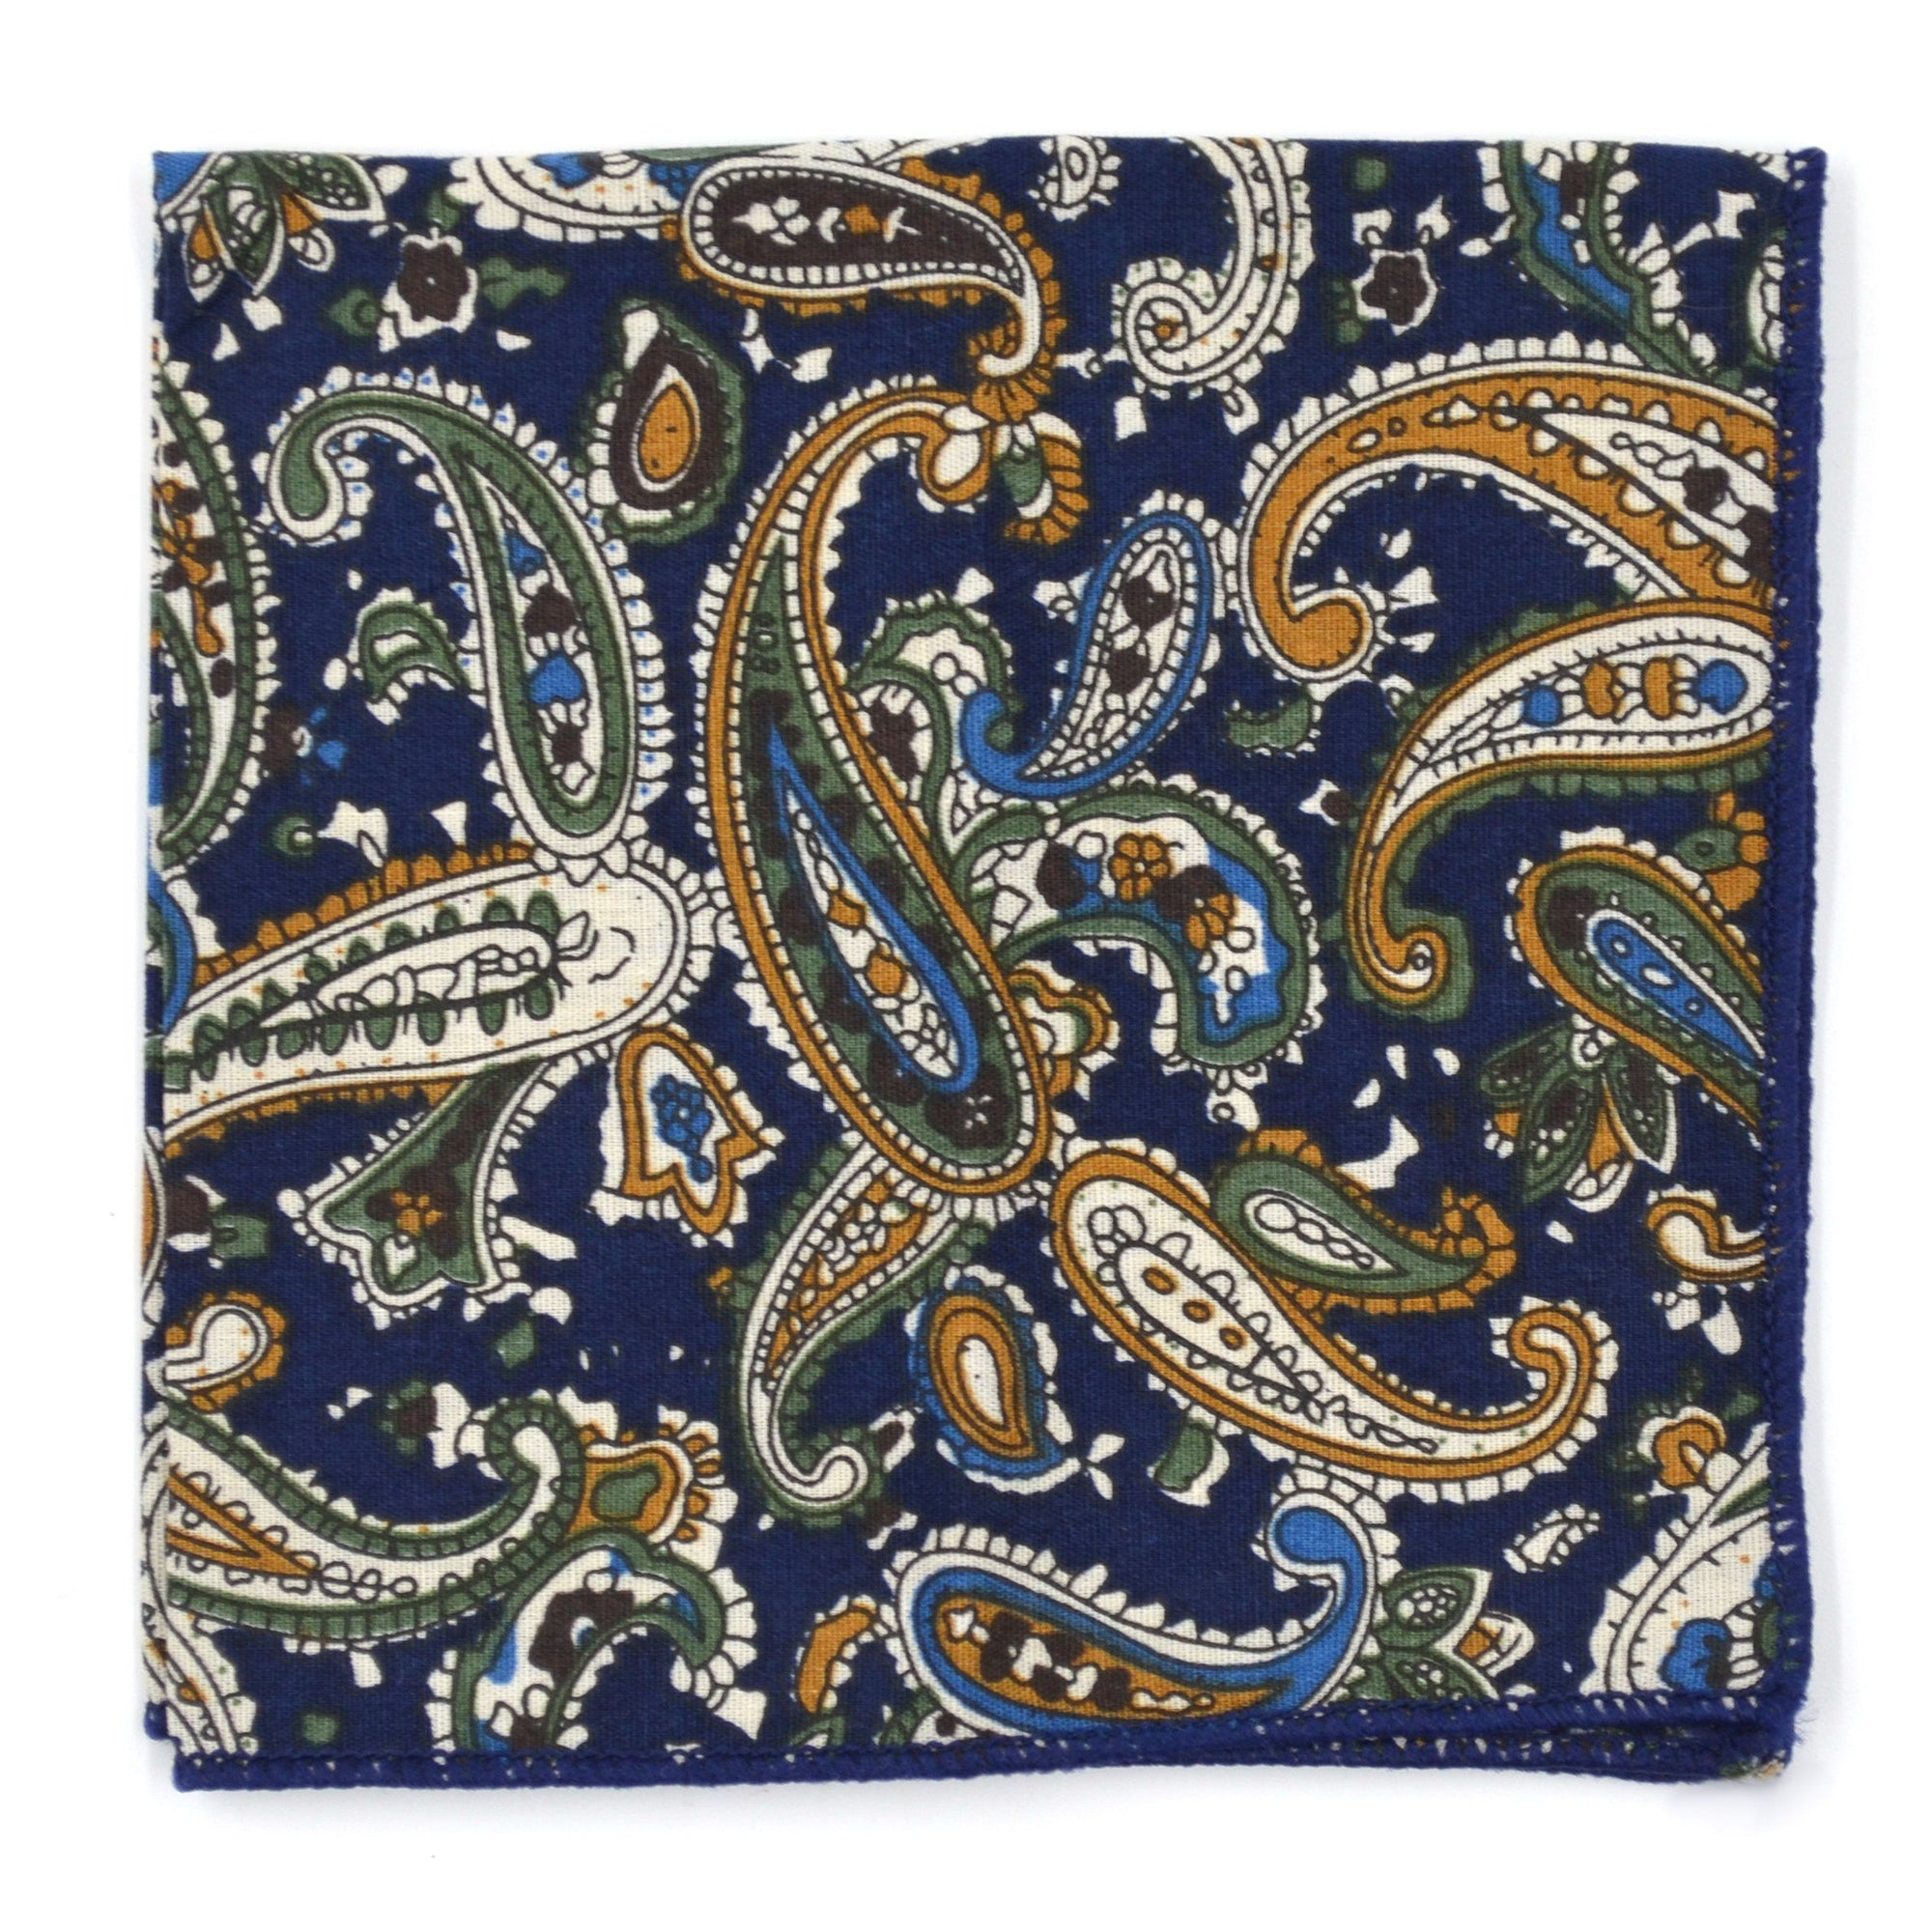 Pocket Square - Paisley Navy Dijon Pocket Square